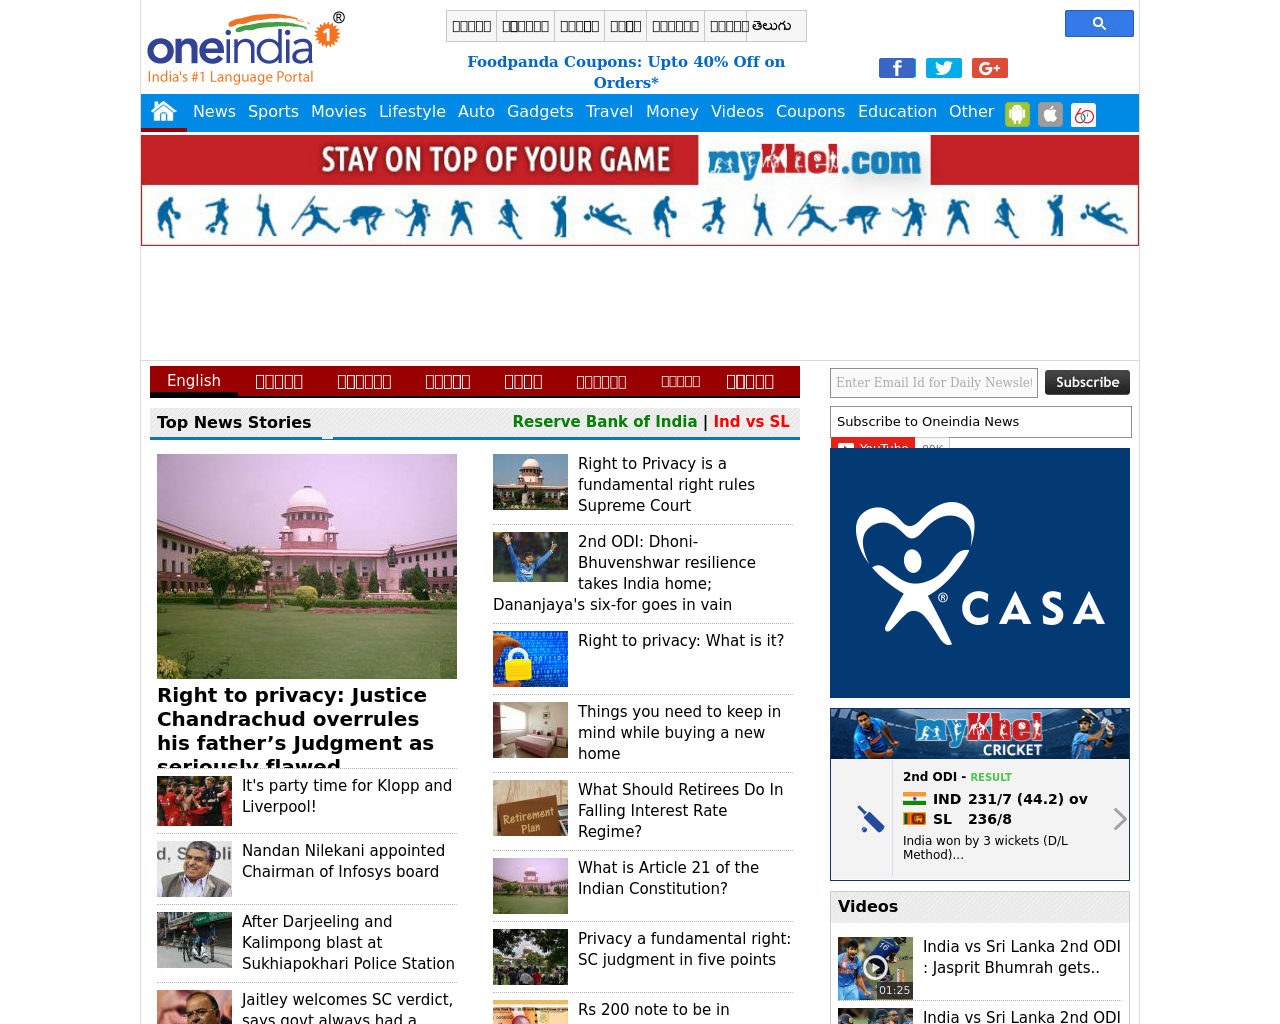 oneindia-Advertising-Reviews-Pricing